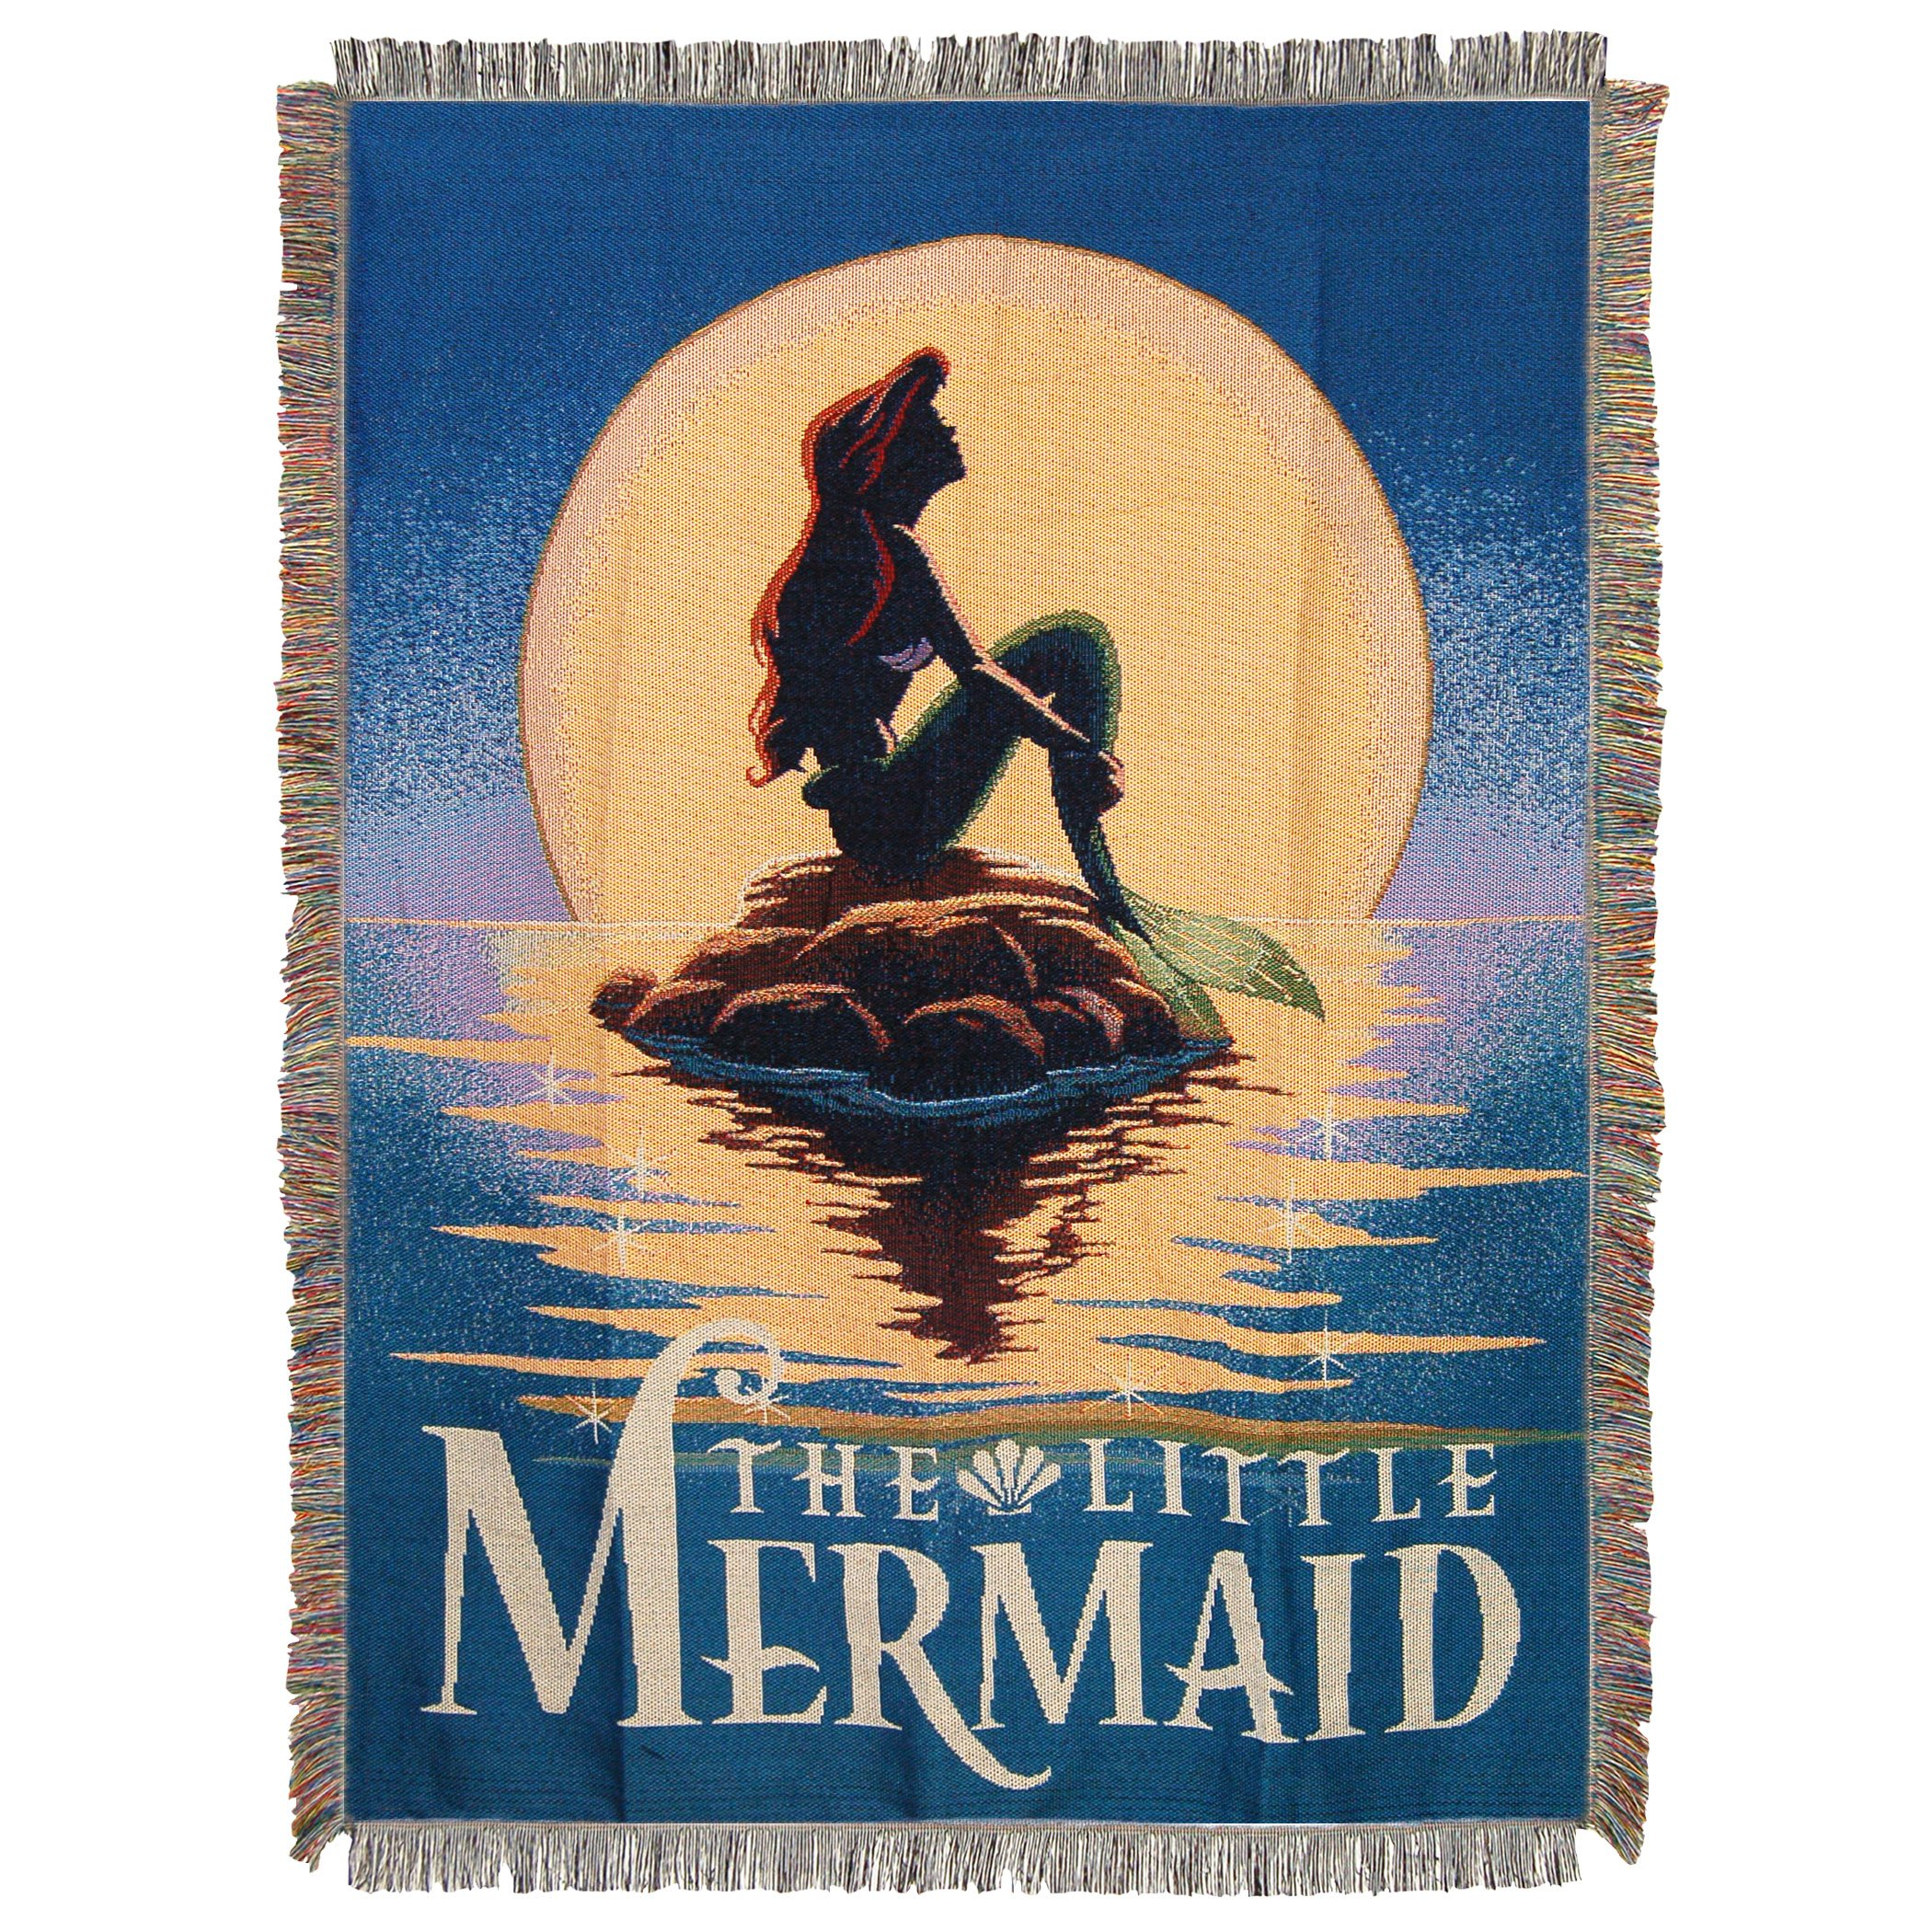 Disney's The Little Mermaid, ''Poster'' Woven Tapestry Throw Blanket, 48'' x 60'', Multi Color